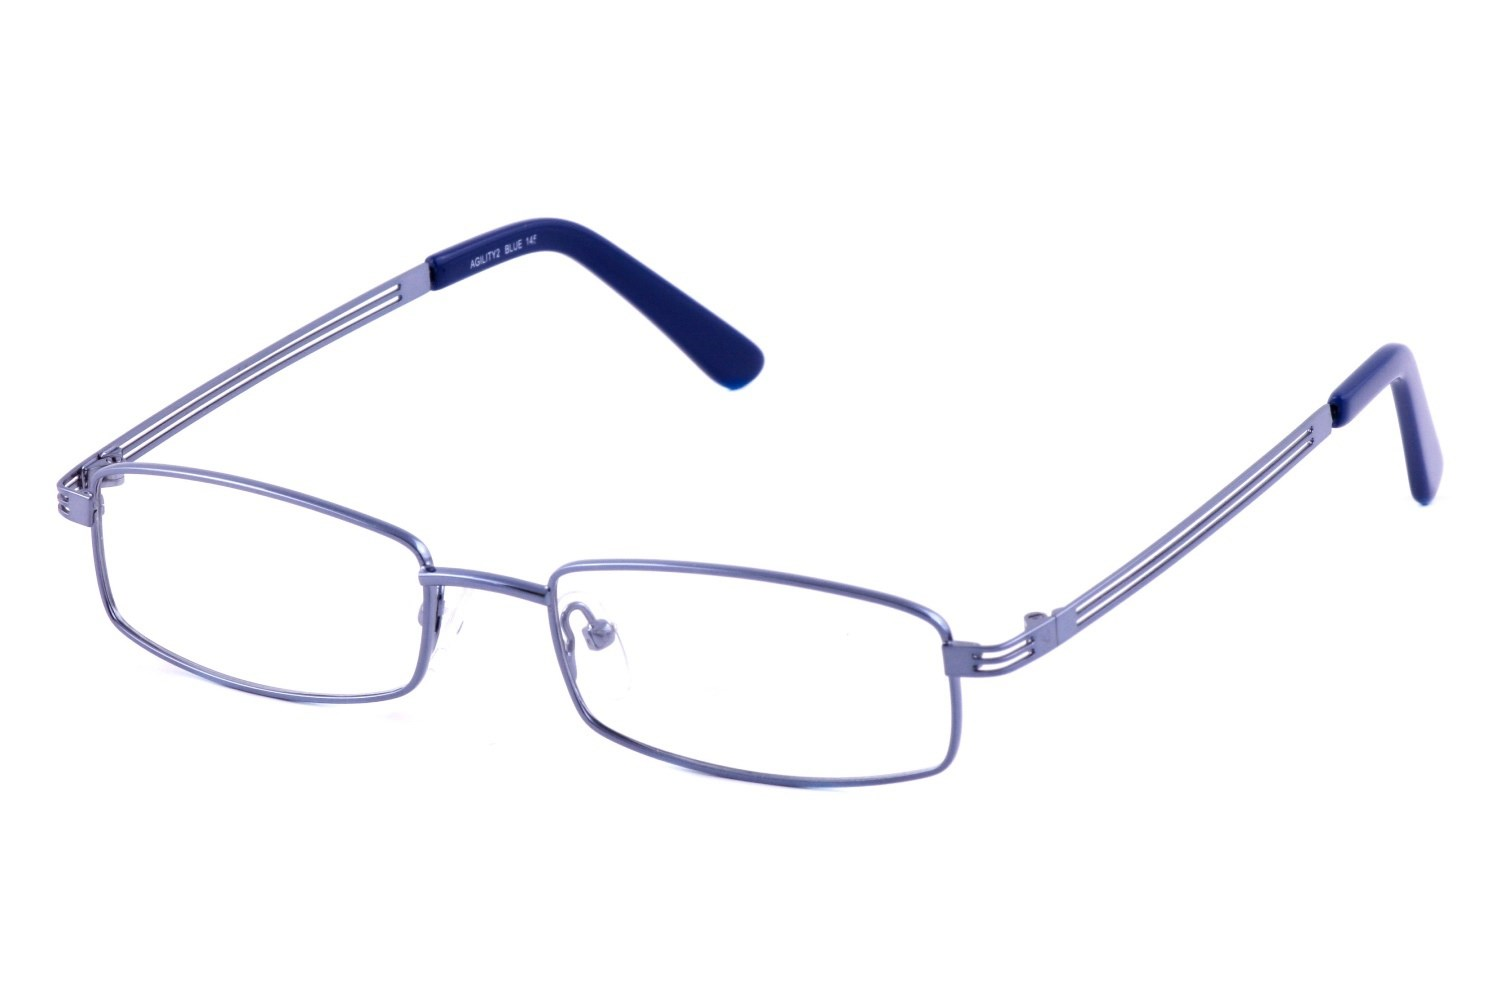 Agility 2 Prescription Eyeglasses Frames